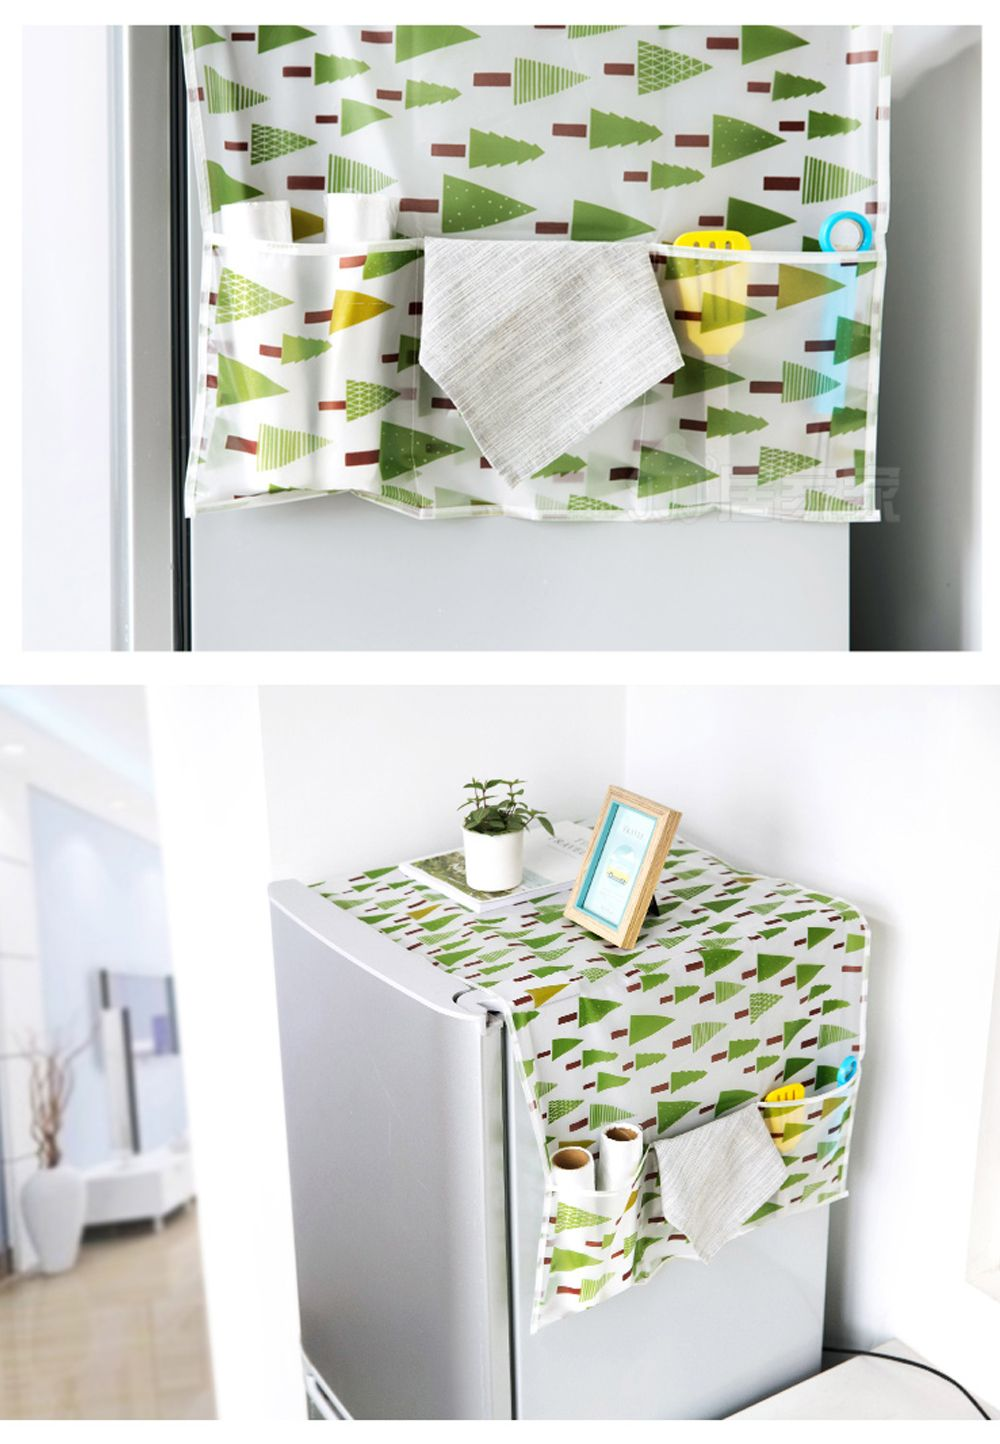 Fabric Dustproof Refrigerator Cover Sheet Hanging Storage Bag